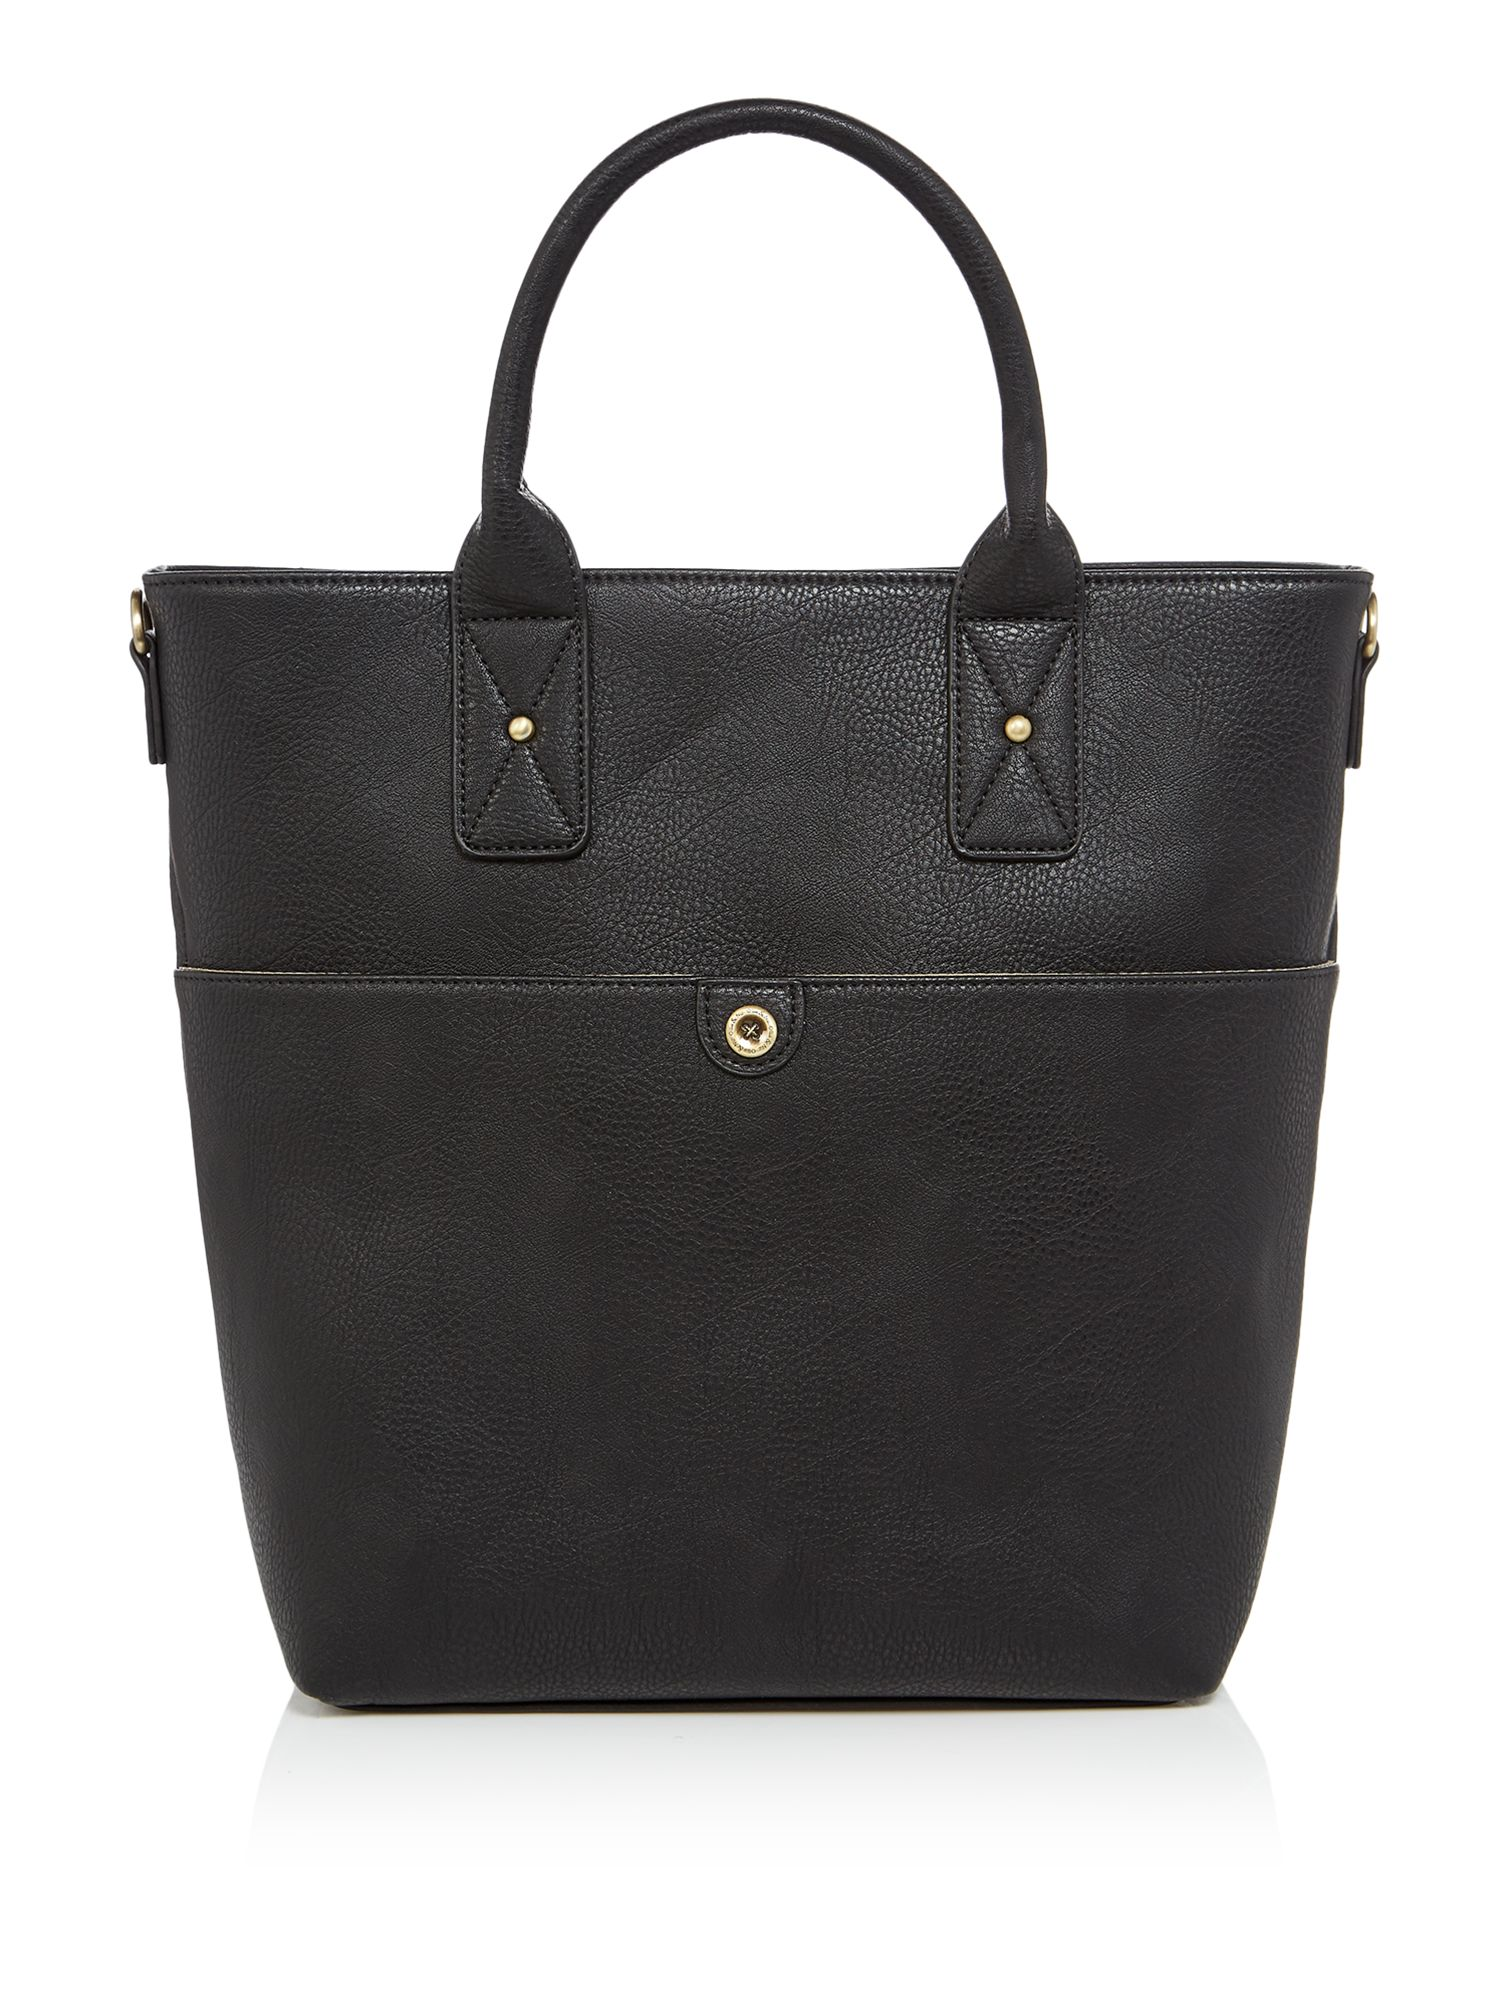 Ollie & Nic Nora Tote Bag, Black